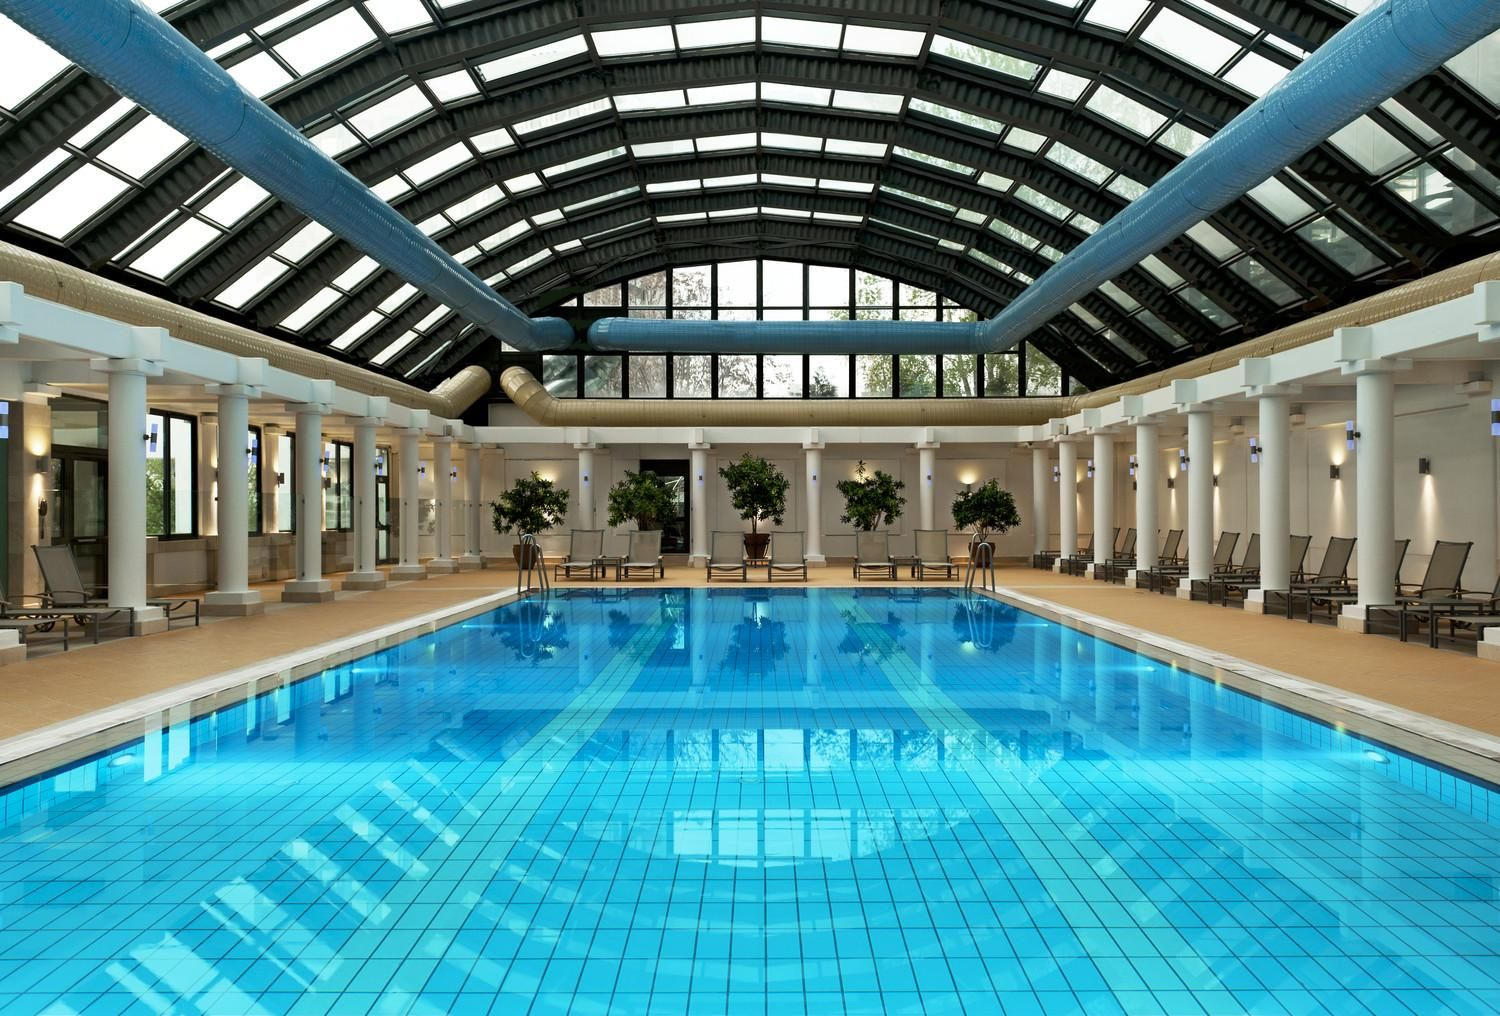 Luxurious Indoor Pool Design With Huge Rectangle Shaped